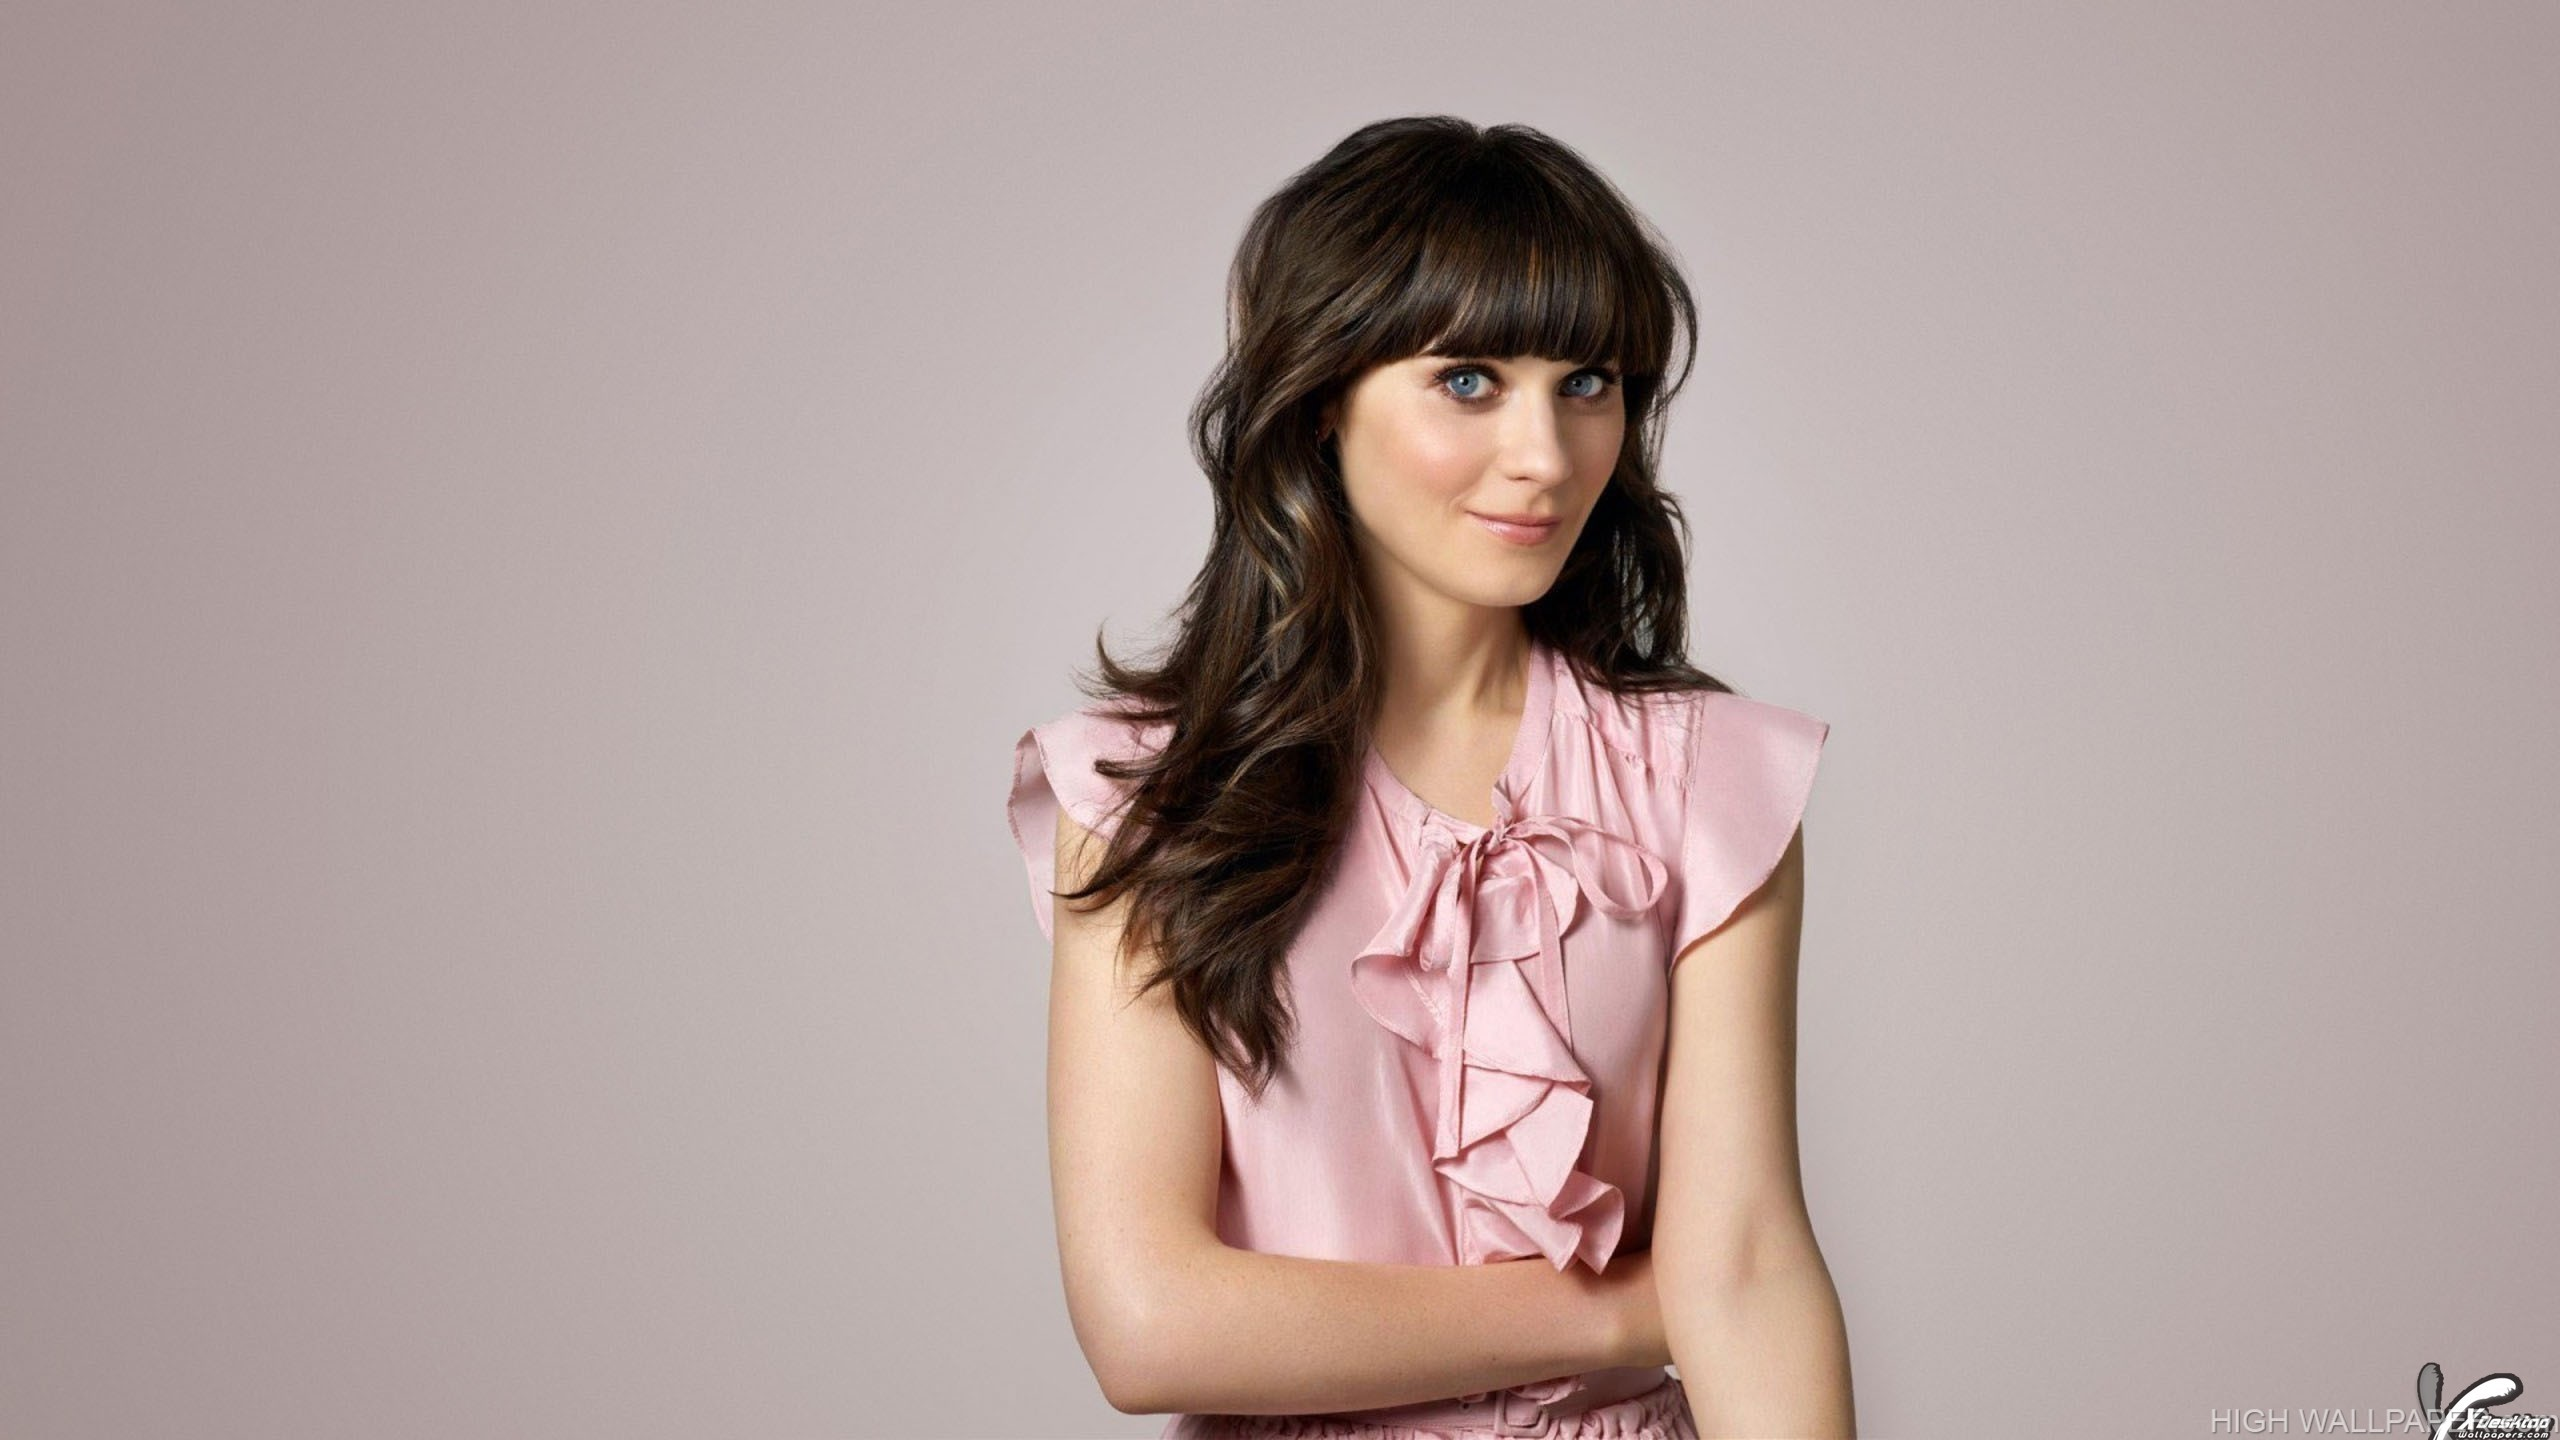 Sweet Zooey Deschanel In Pink Dress Making A Cute Pose